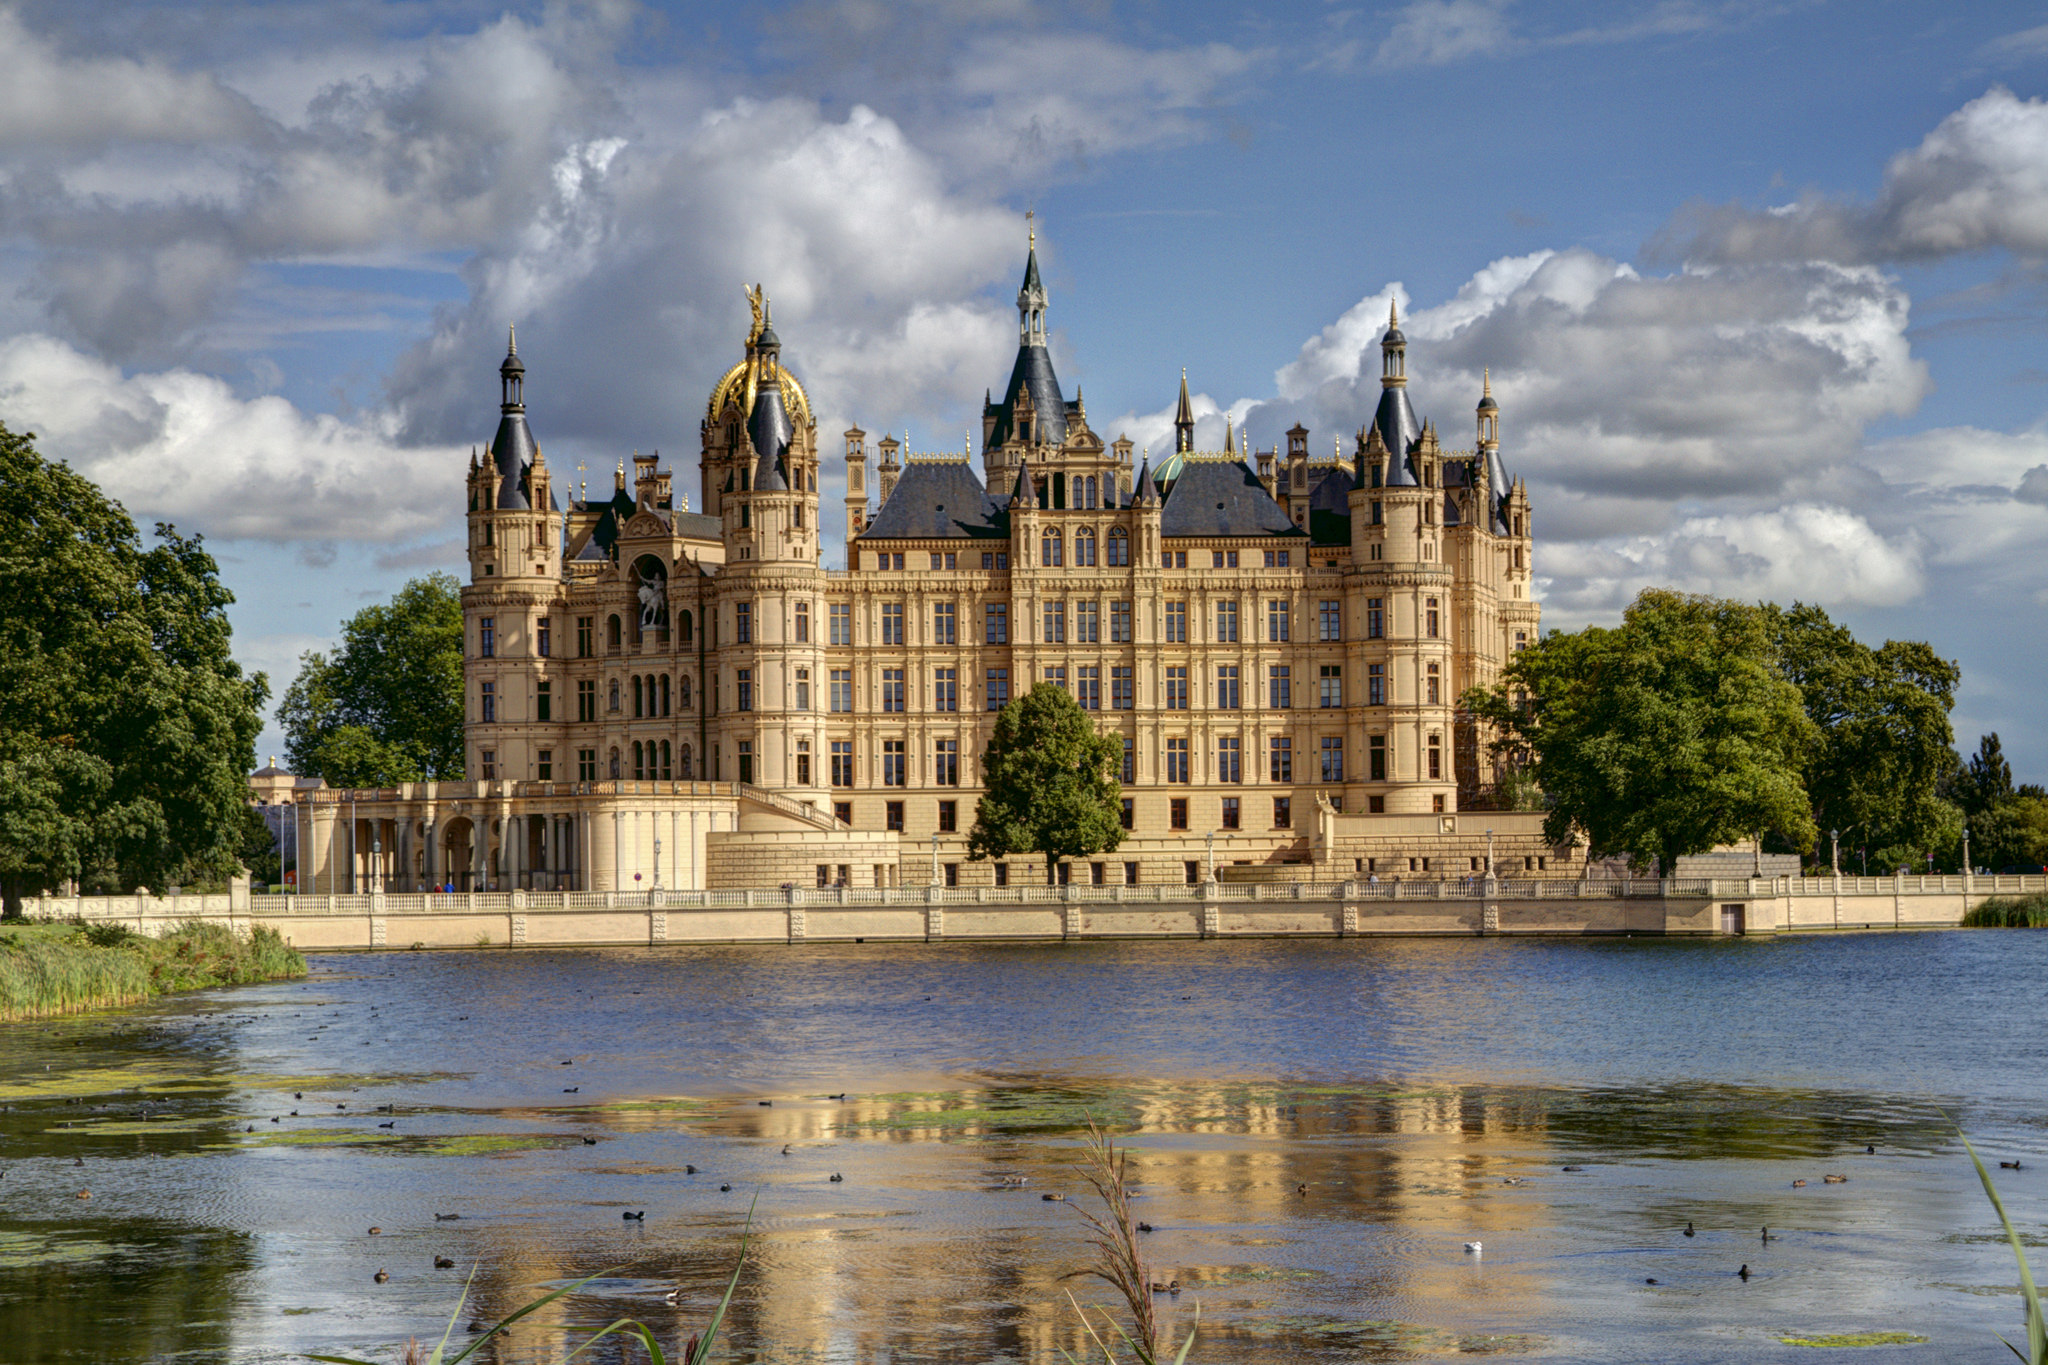 Schwerin Castle Castle in Germany Thousand Wonders : SchwerinCastleoriginal14105 from www.thousandwonders.net size 2048 x 1365 jpeg 892kB